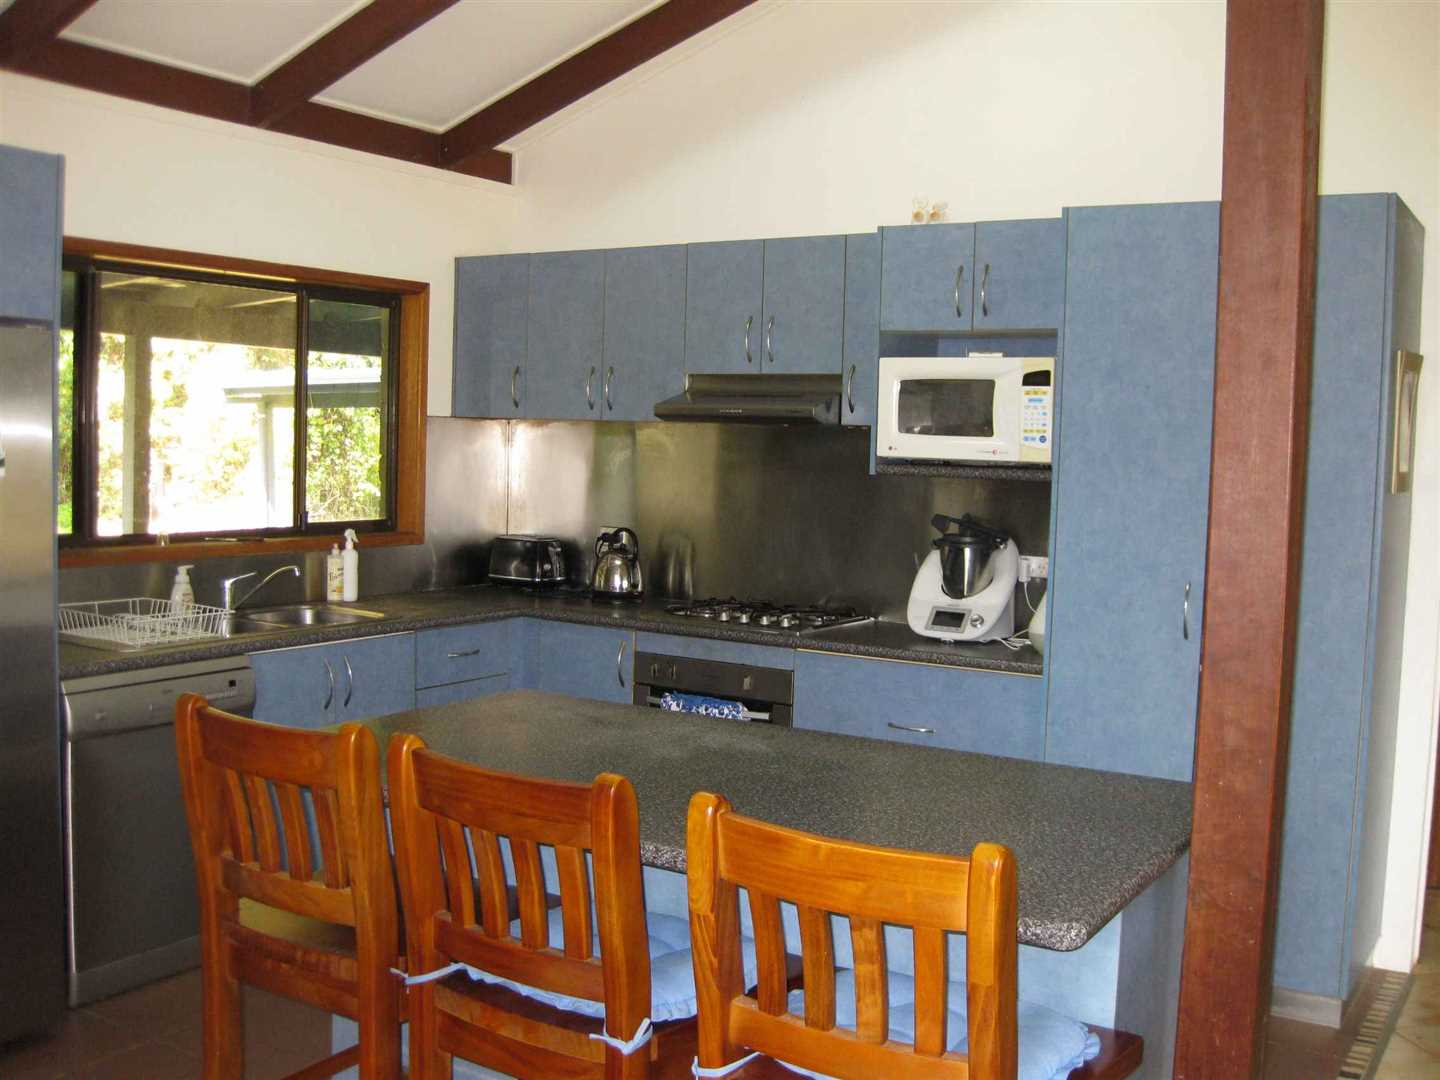 Inside view of part of home showing part of kitchen, photo 2